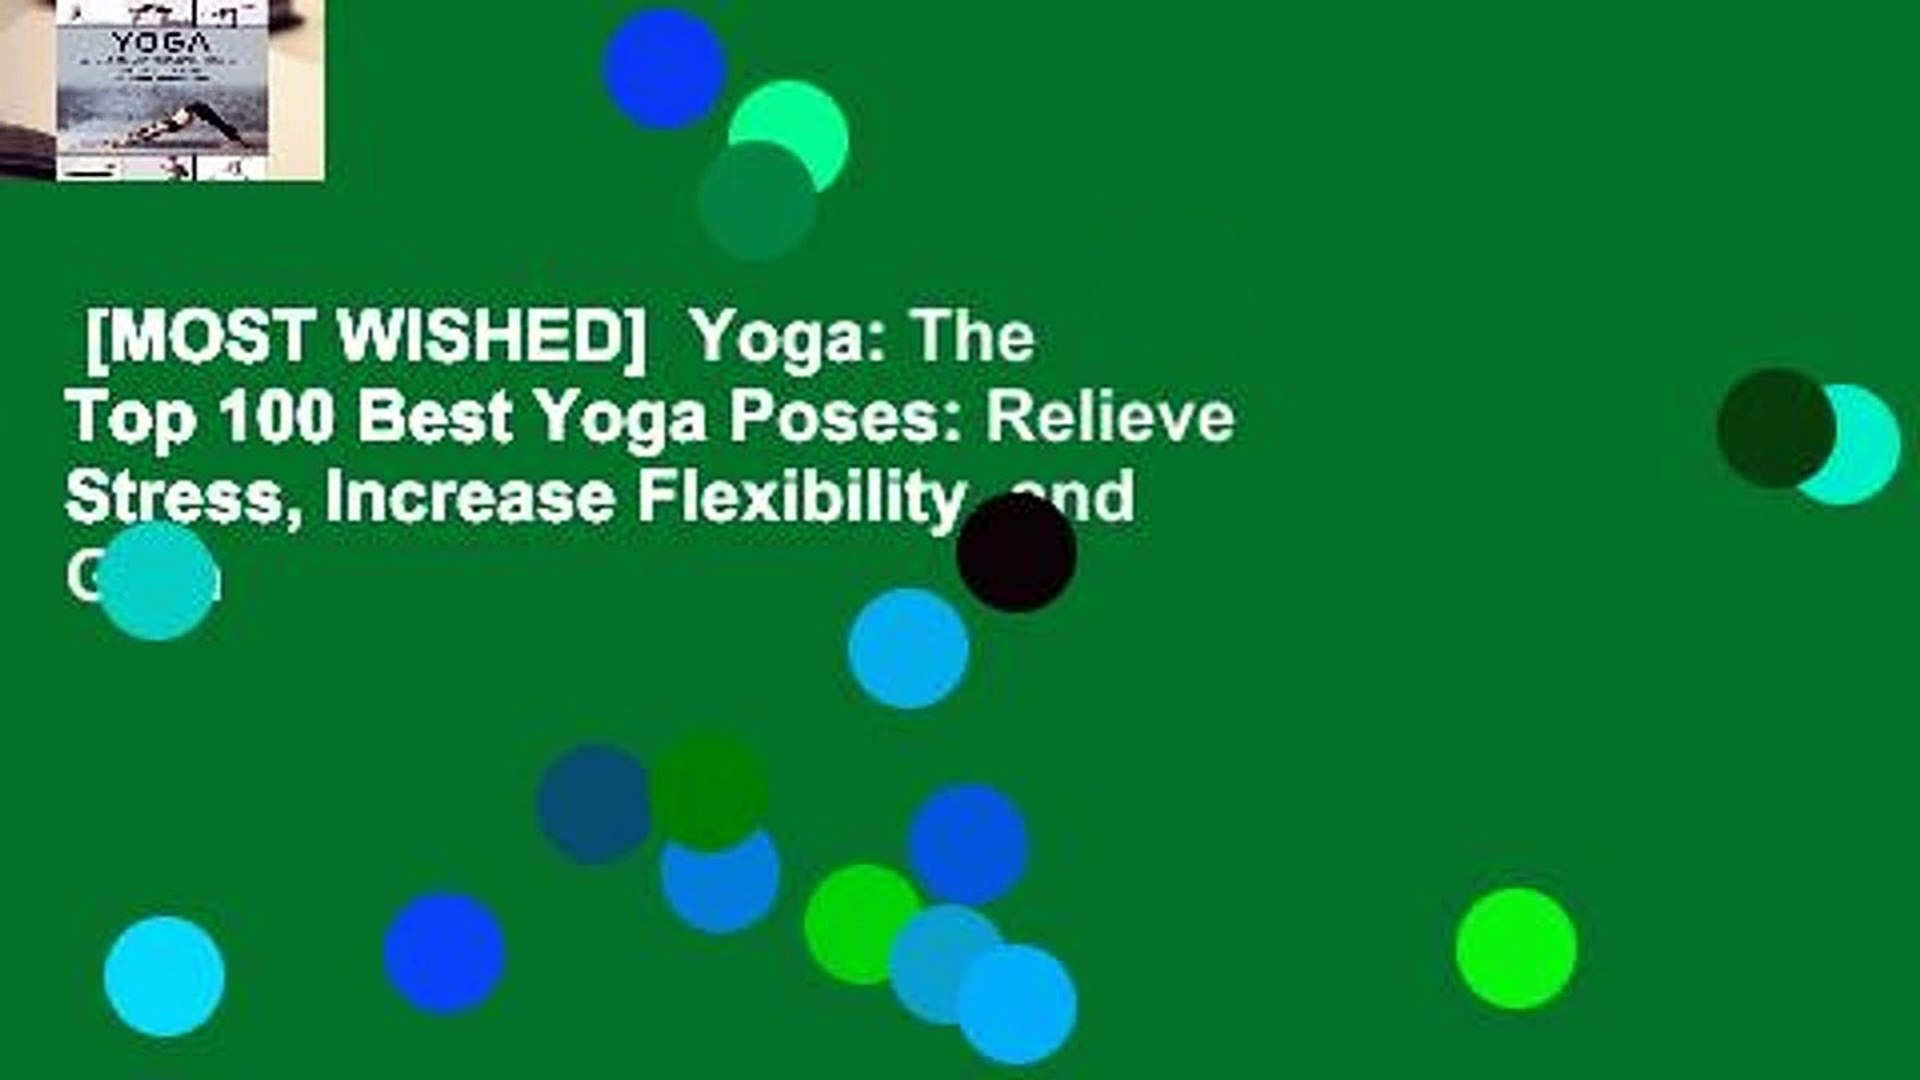 [MOST WISHED]  Yoga: The Top 100 Best Yoga Poses: Relieve Stress, Increase Flexibility, and Gain